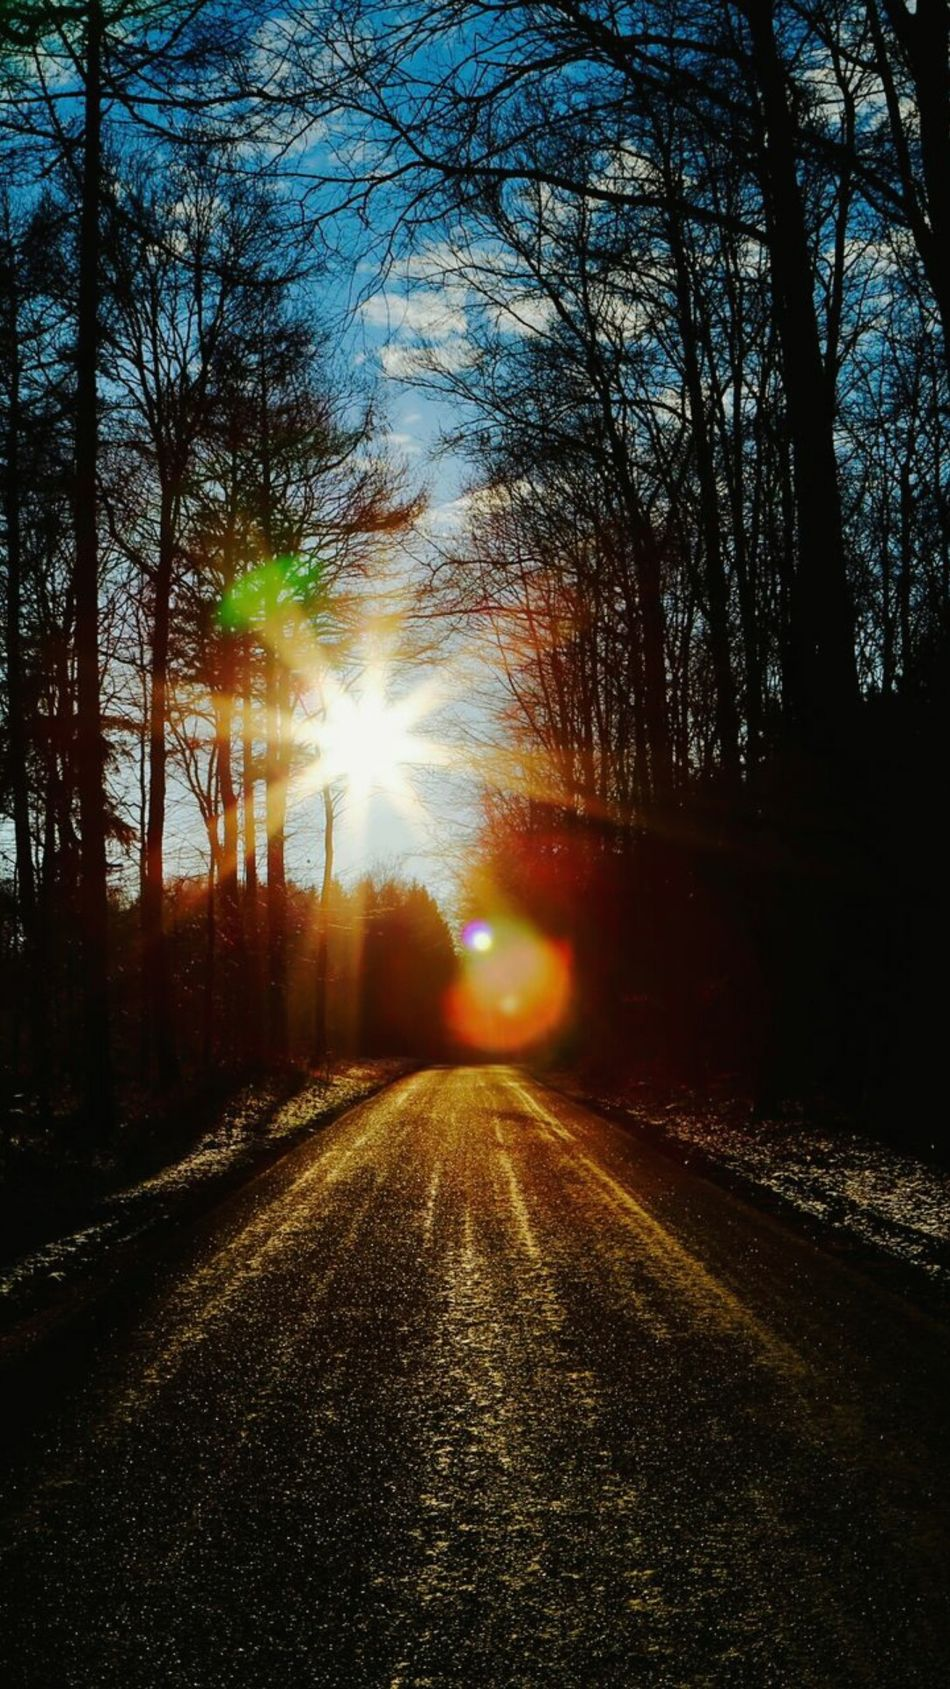 The Way Forward Sunbeam Sunbeams Sun Sunlight Sun_collection Lensflares Tree Trees Tree_collection  Hugging A Tree Forest Woods Walk In The Woods Outdoors No People Nature Beauty In Nature EyeEm Nature Lover Nature_collection Naturelovers Tranquility Tranquil Scene Scenics Road